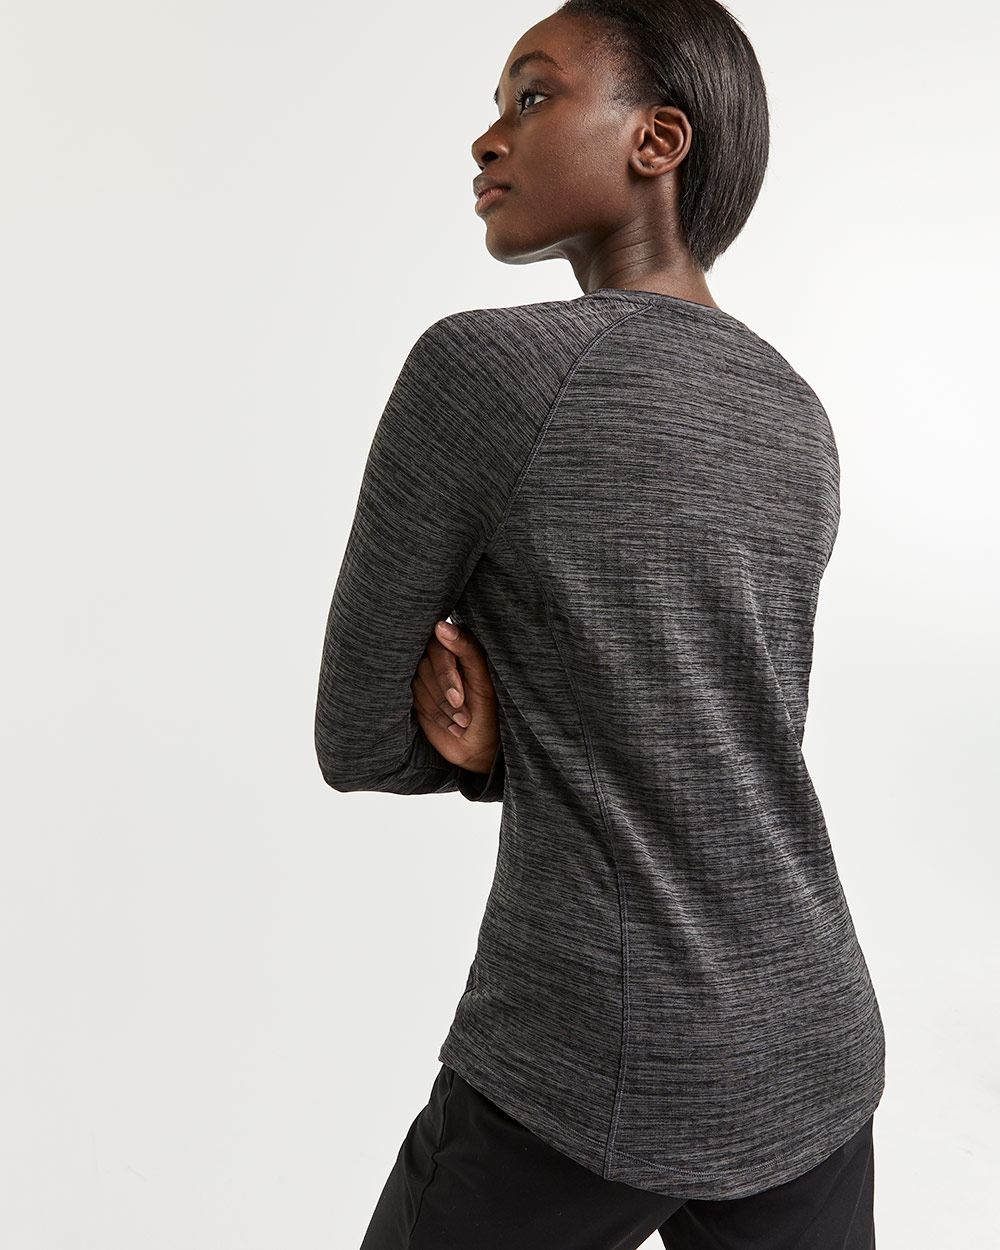 Hyba Long Sleeve Base Layer Tee